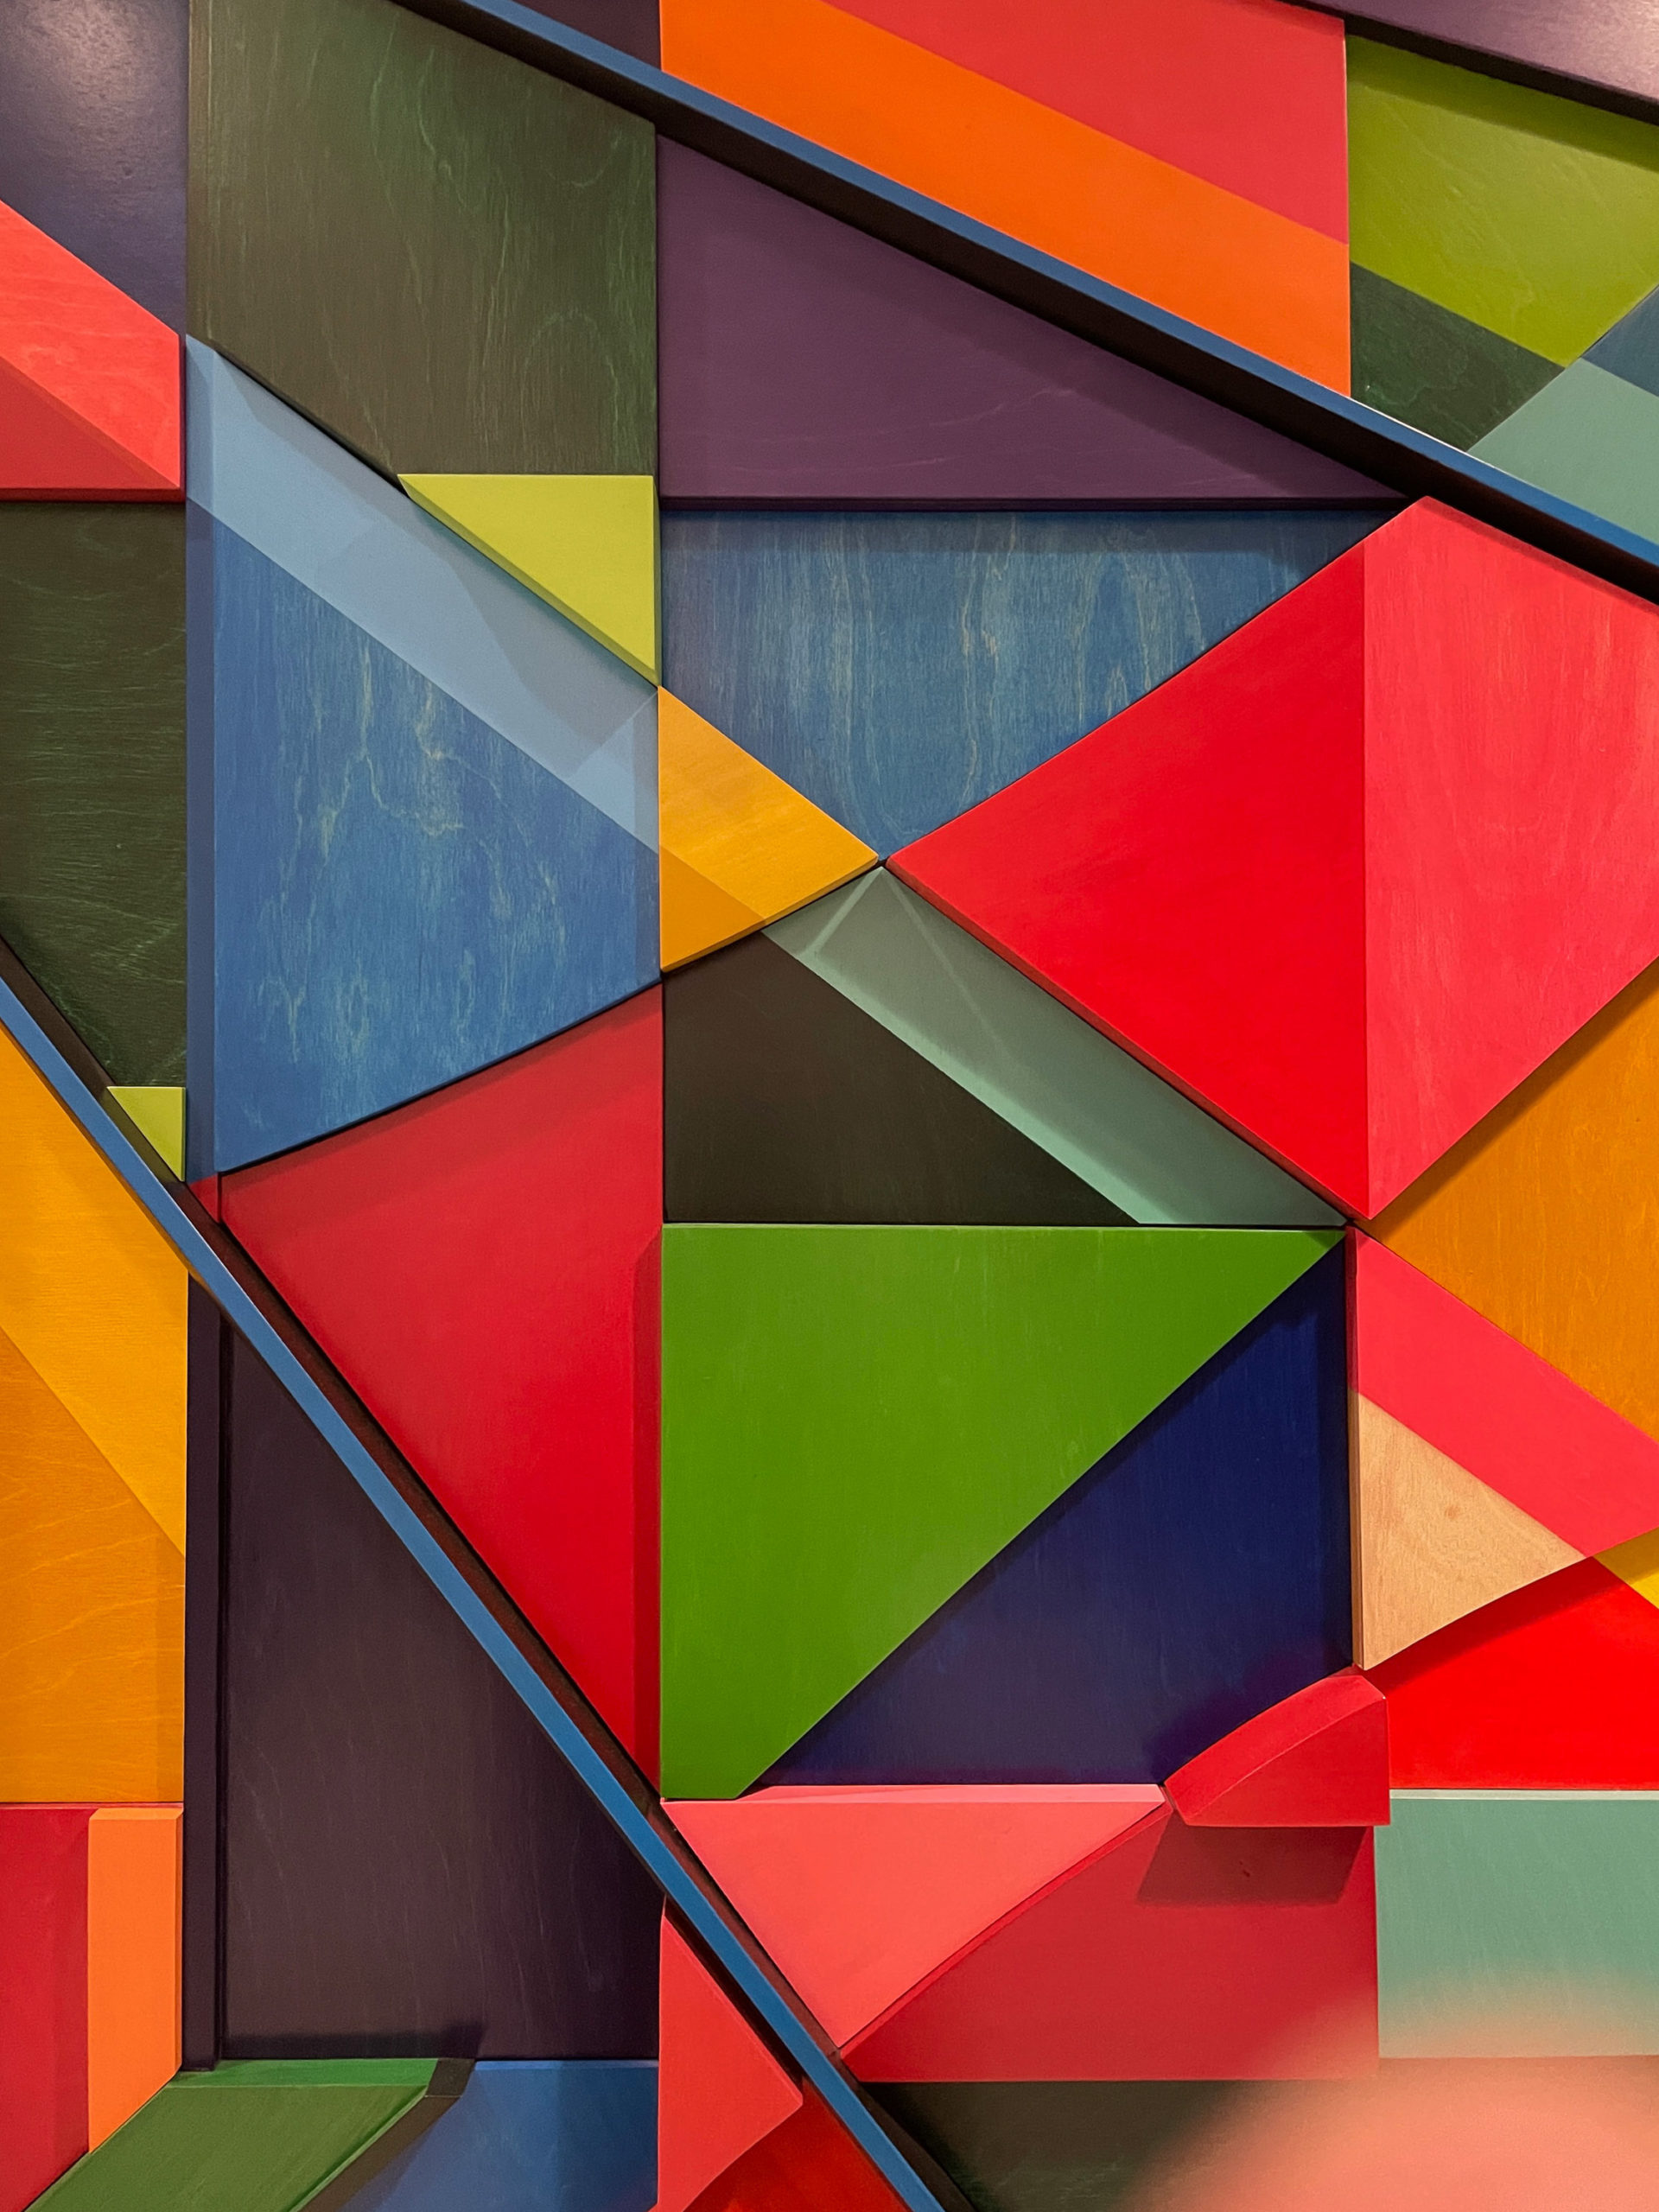 Geometric colorful triangles form a piece of art